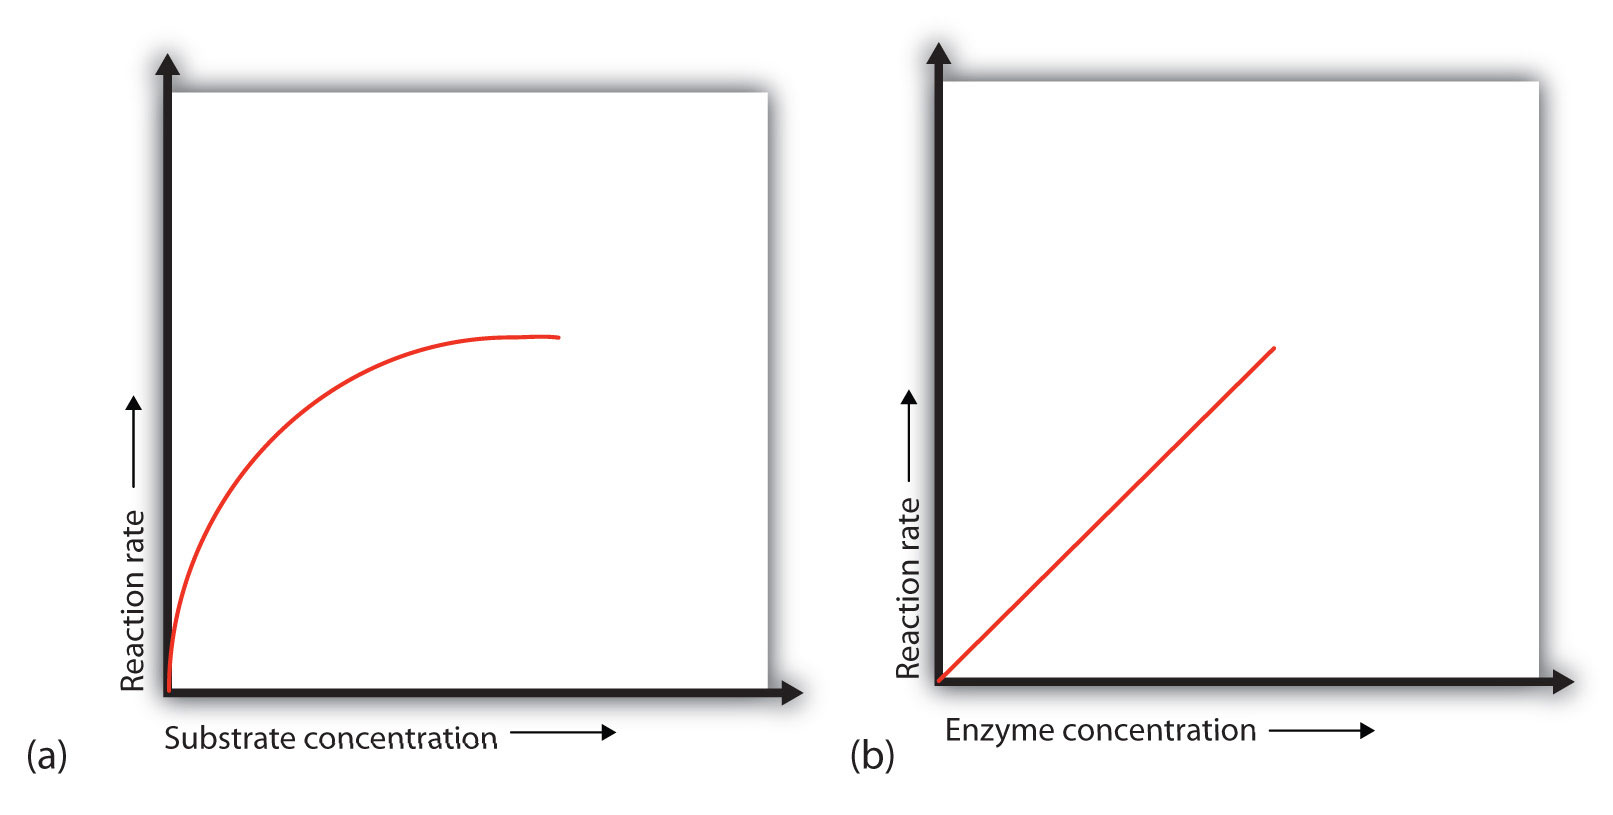 Help me do my essay investigation into the effect of changing the substrate concentration on the enzyme catalyse